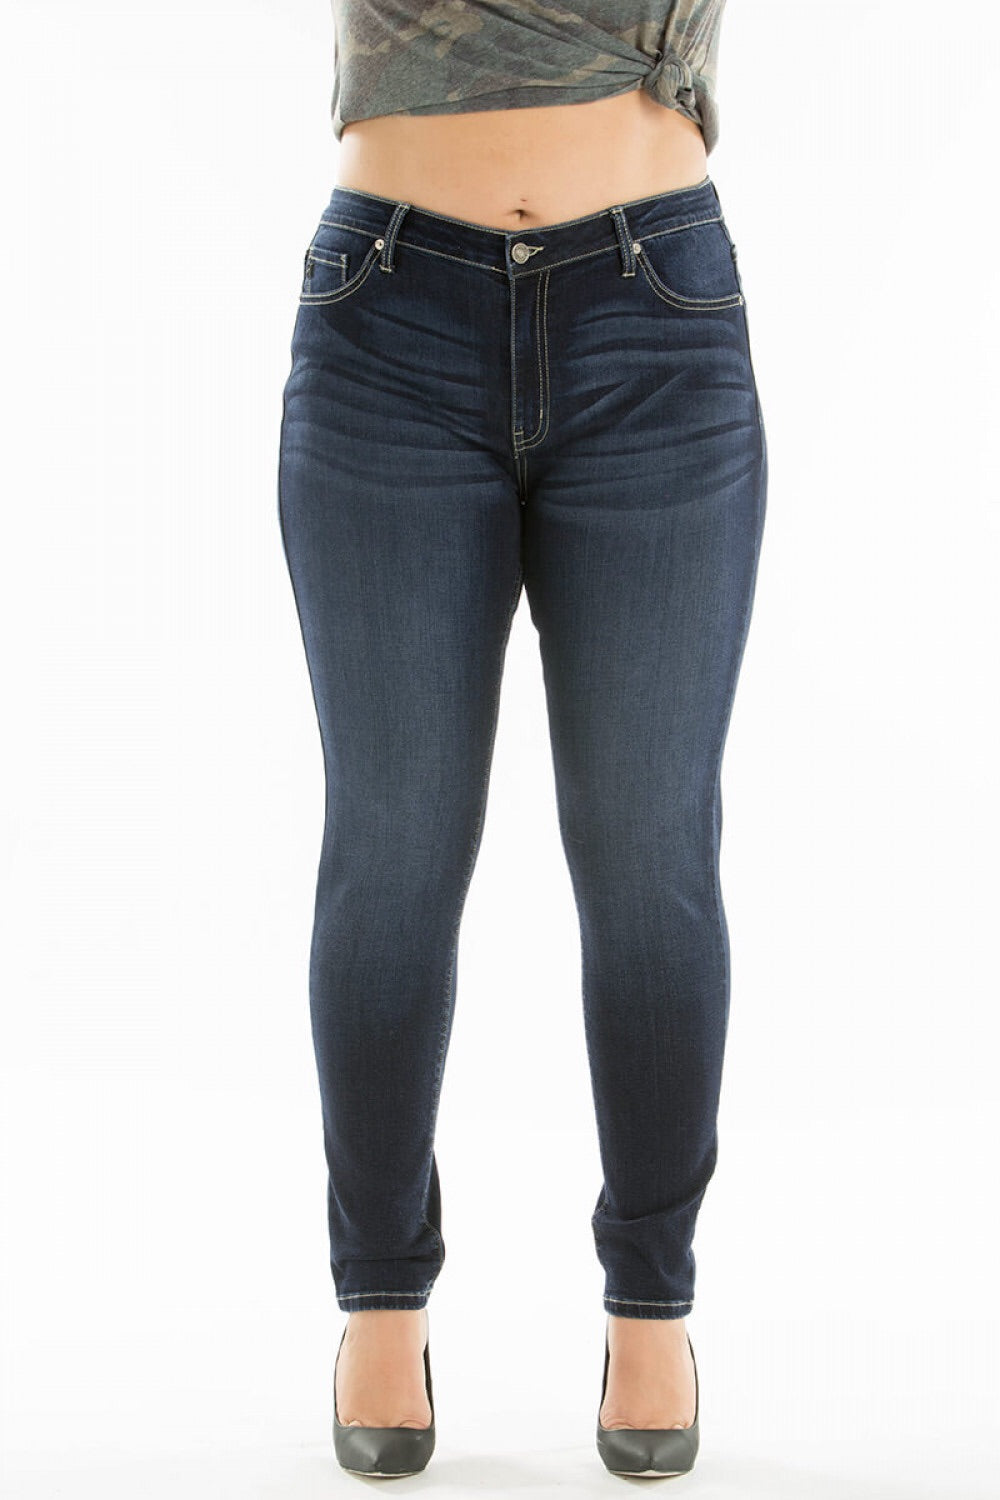 Plus Size Dark Wash Kancan Jeans